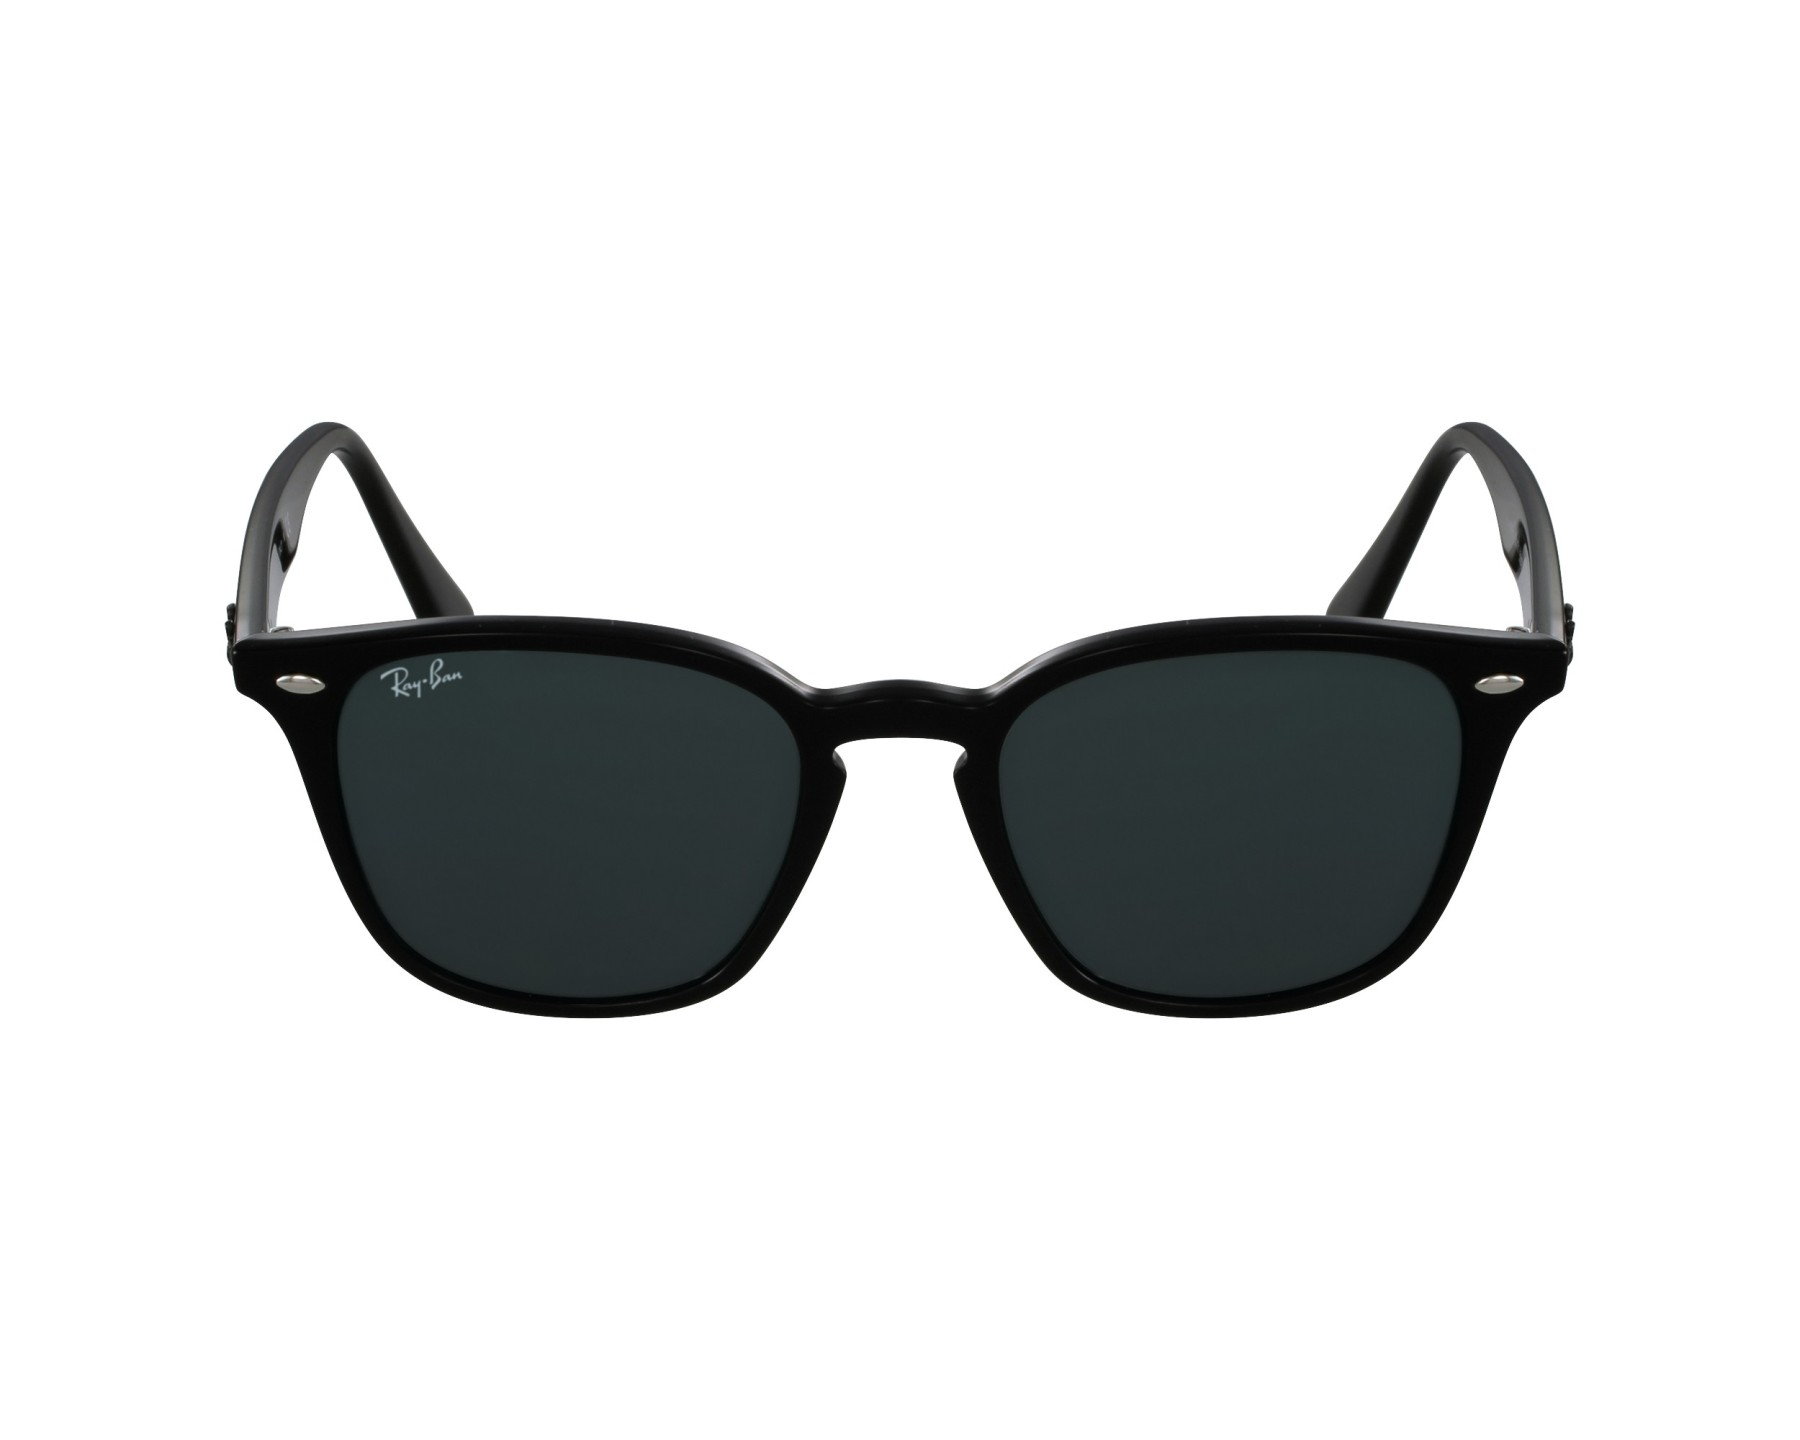 6b73de625d thumbnail Sunglasses Ray-Ban RB-4258 601 71 - Black profile view